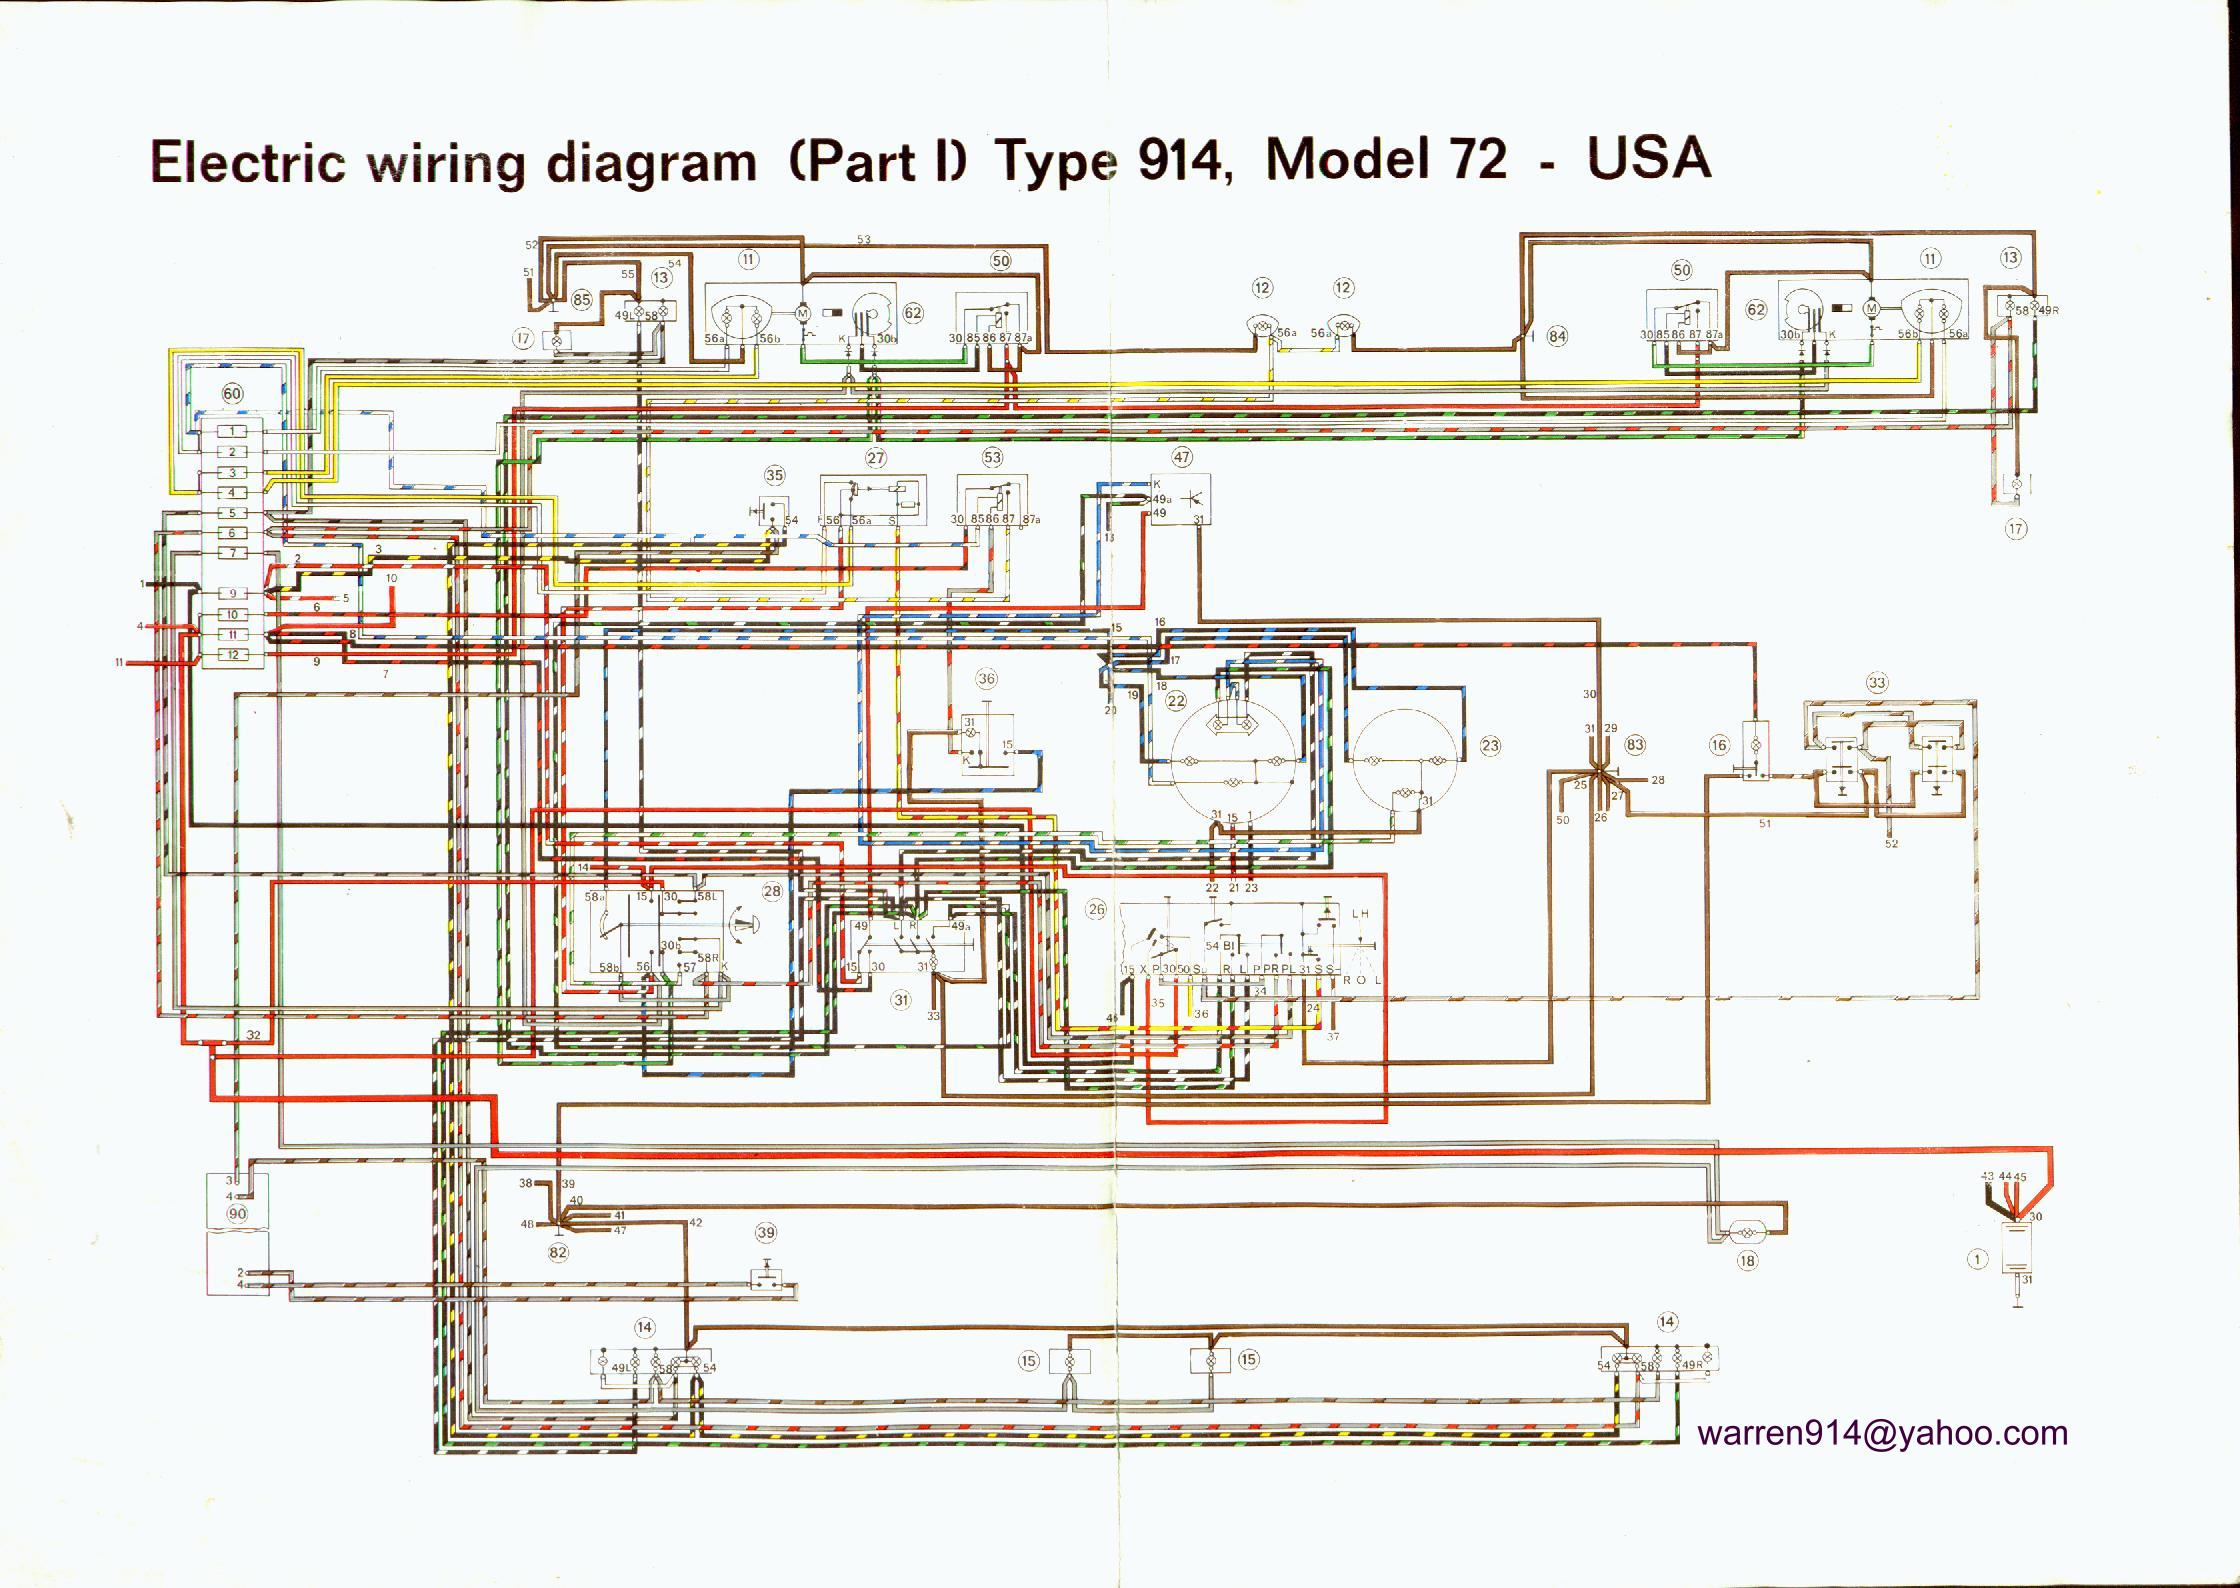 1975 porsche 914 wiring diagram clustering in sql server 2008 with 1973 1970